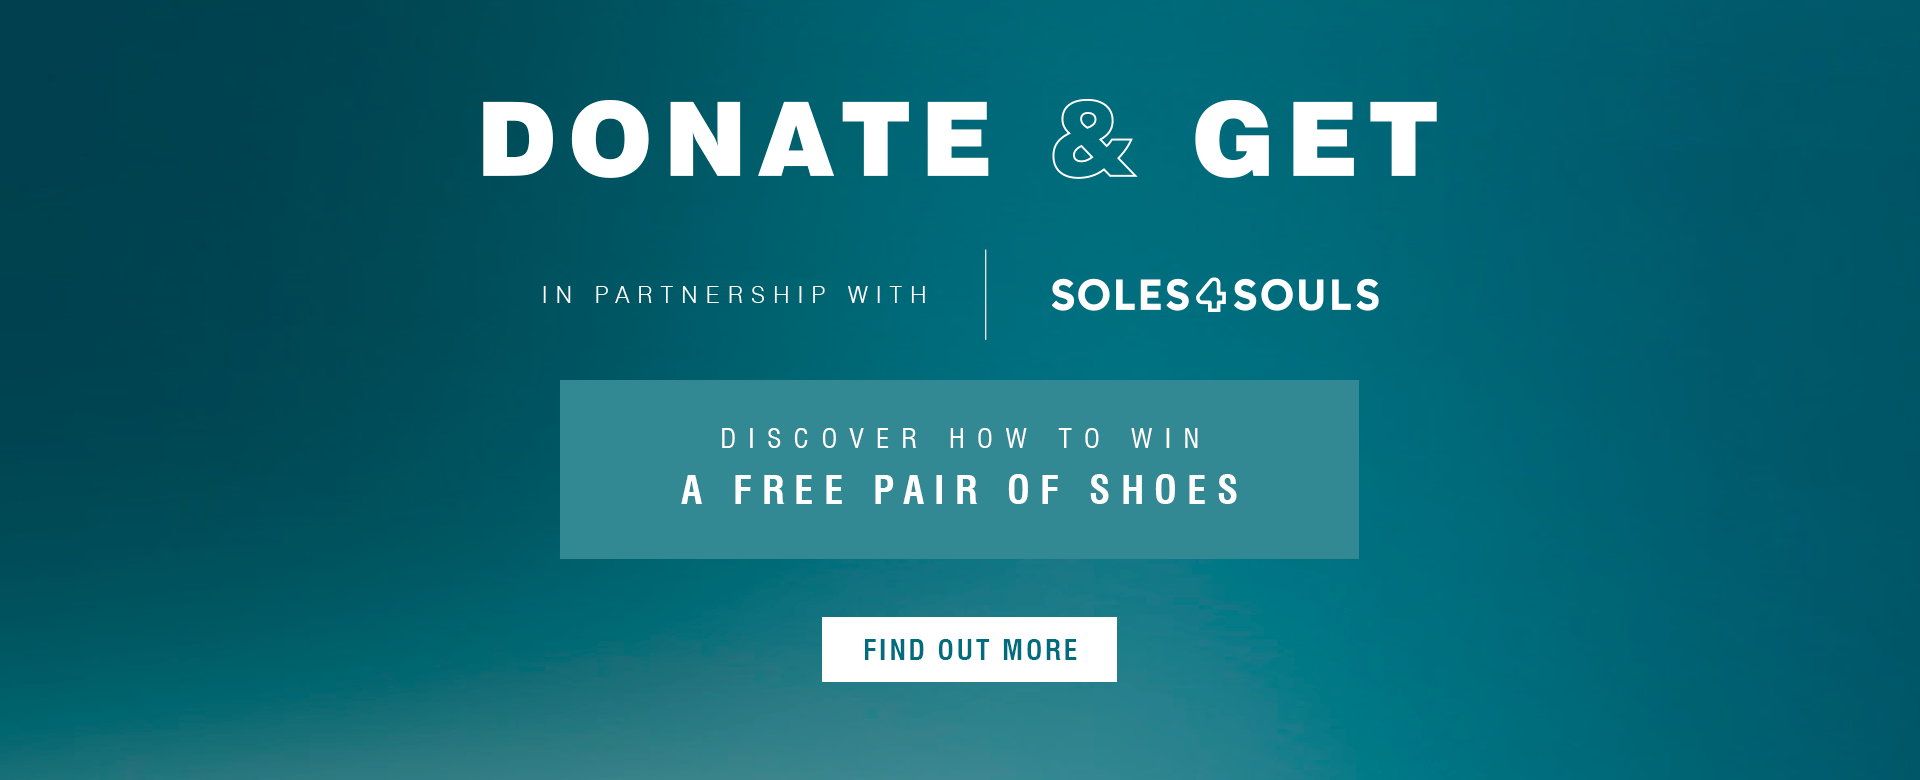 donate and get, soles4souls